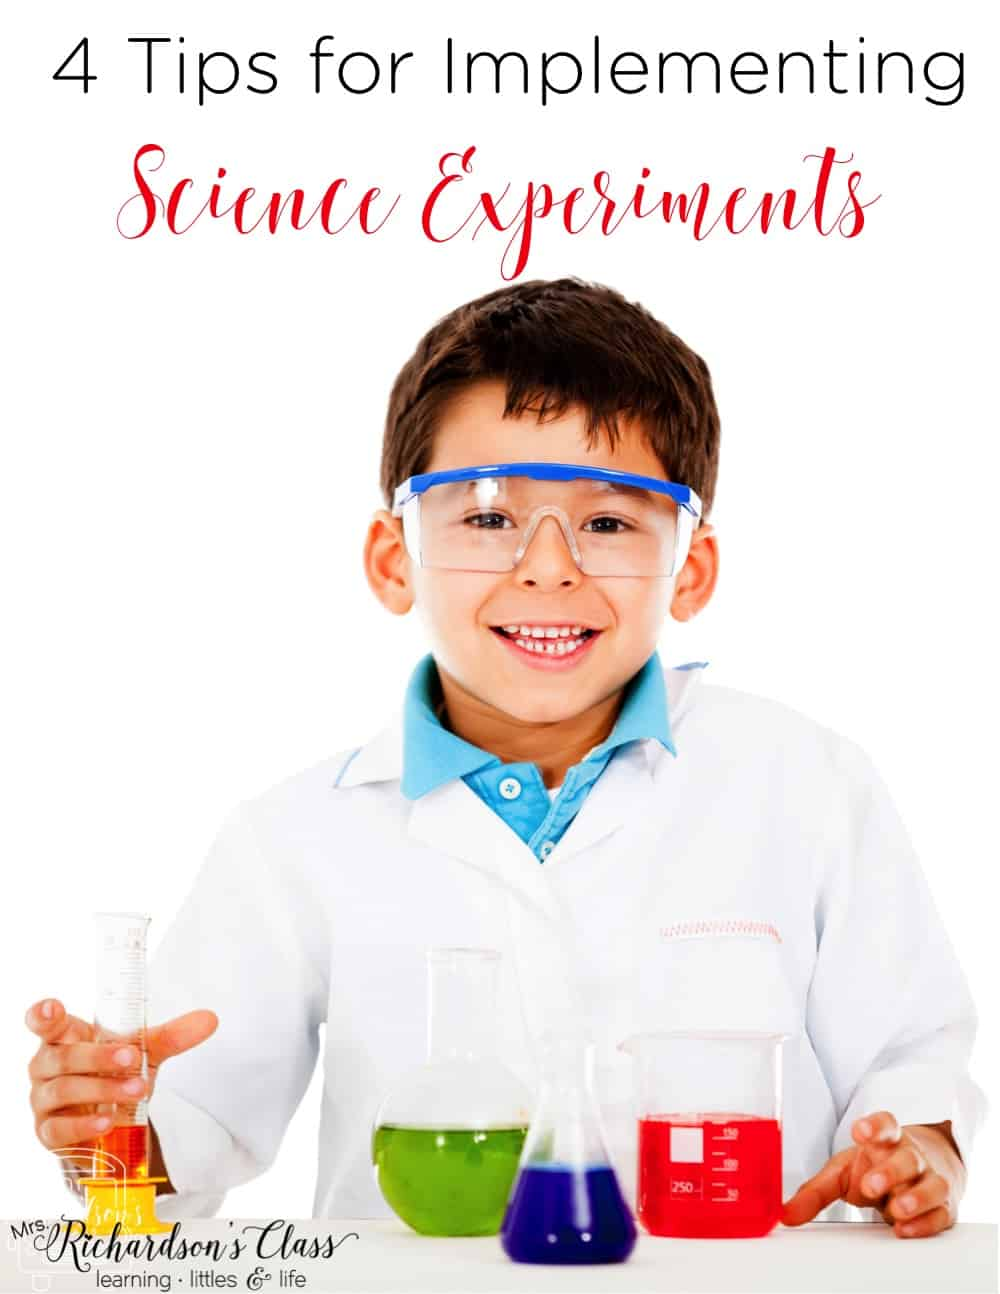 Implementing science experiments doesn't have to be hard. These tips are great reminders for science experiments with kindergarten and first graders! #scienceexperiments #elementary #homeschoollife #scienceideas #classroomscience